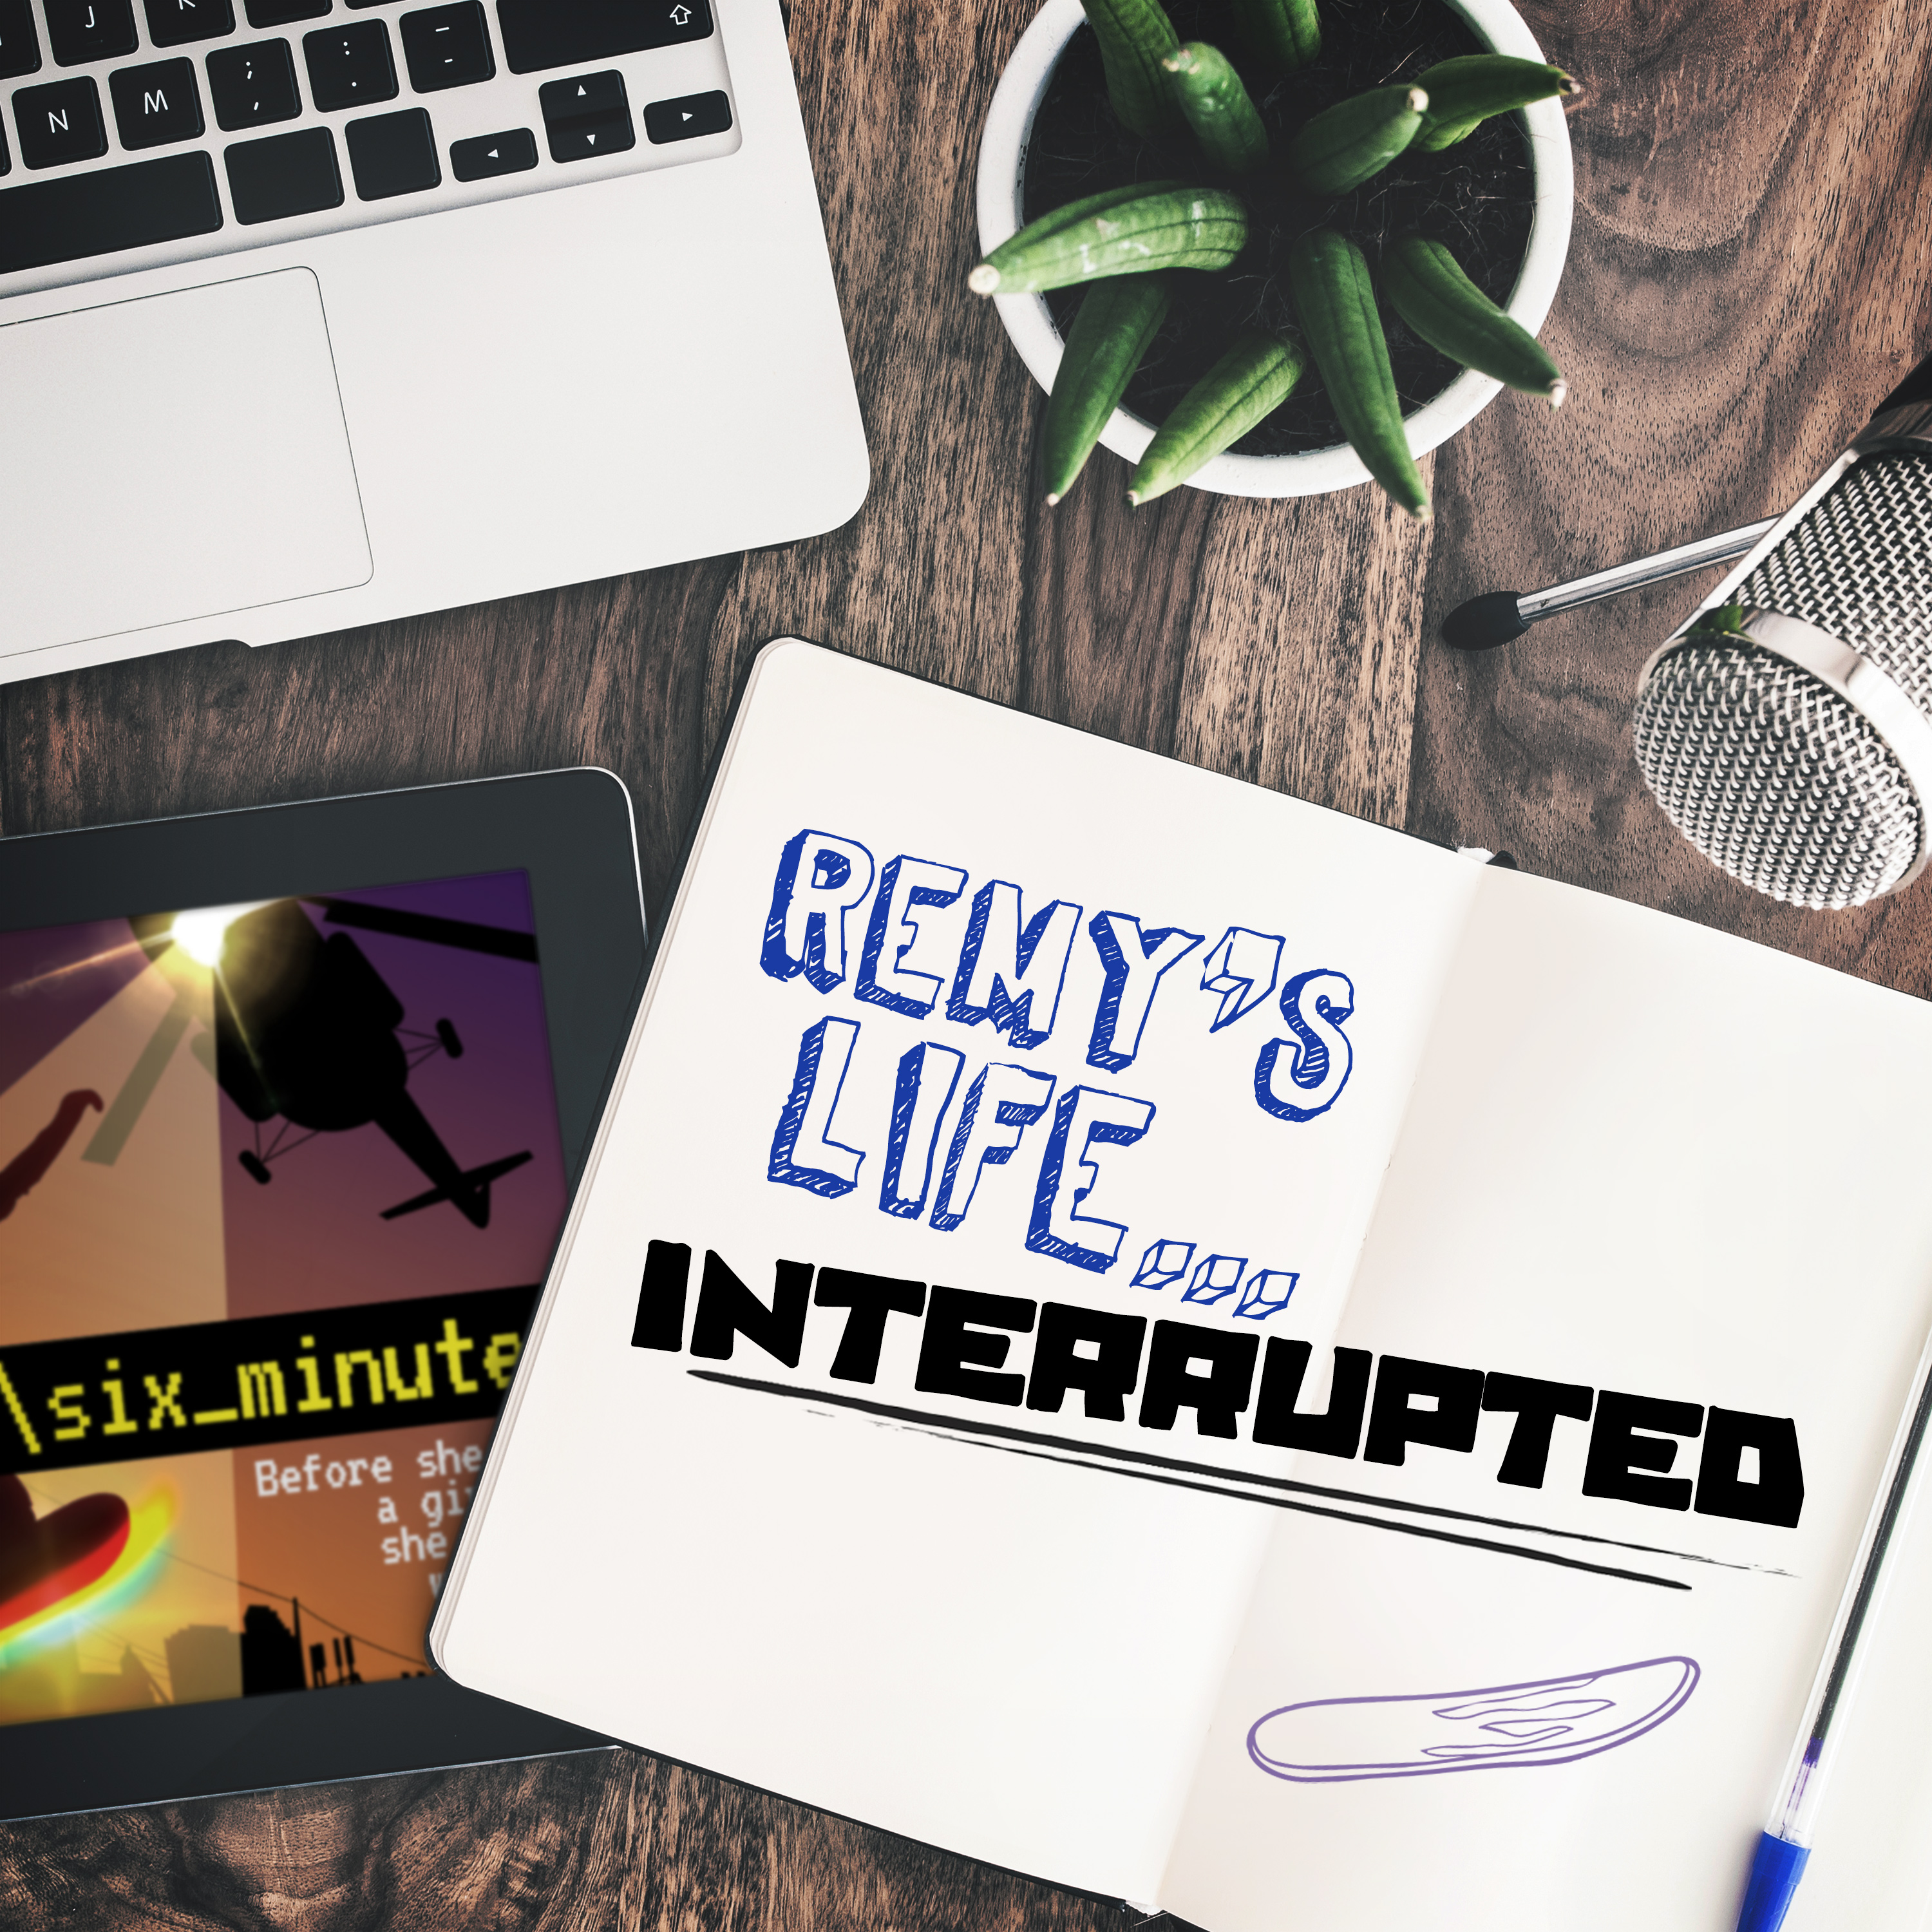 Remy's Life Interrupted: EP70